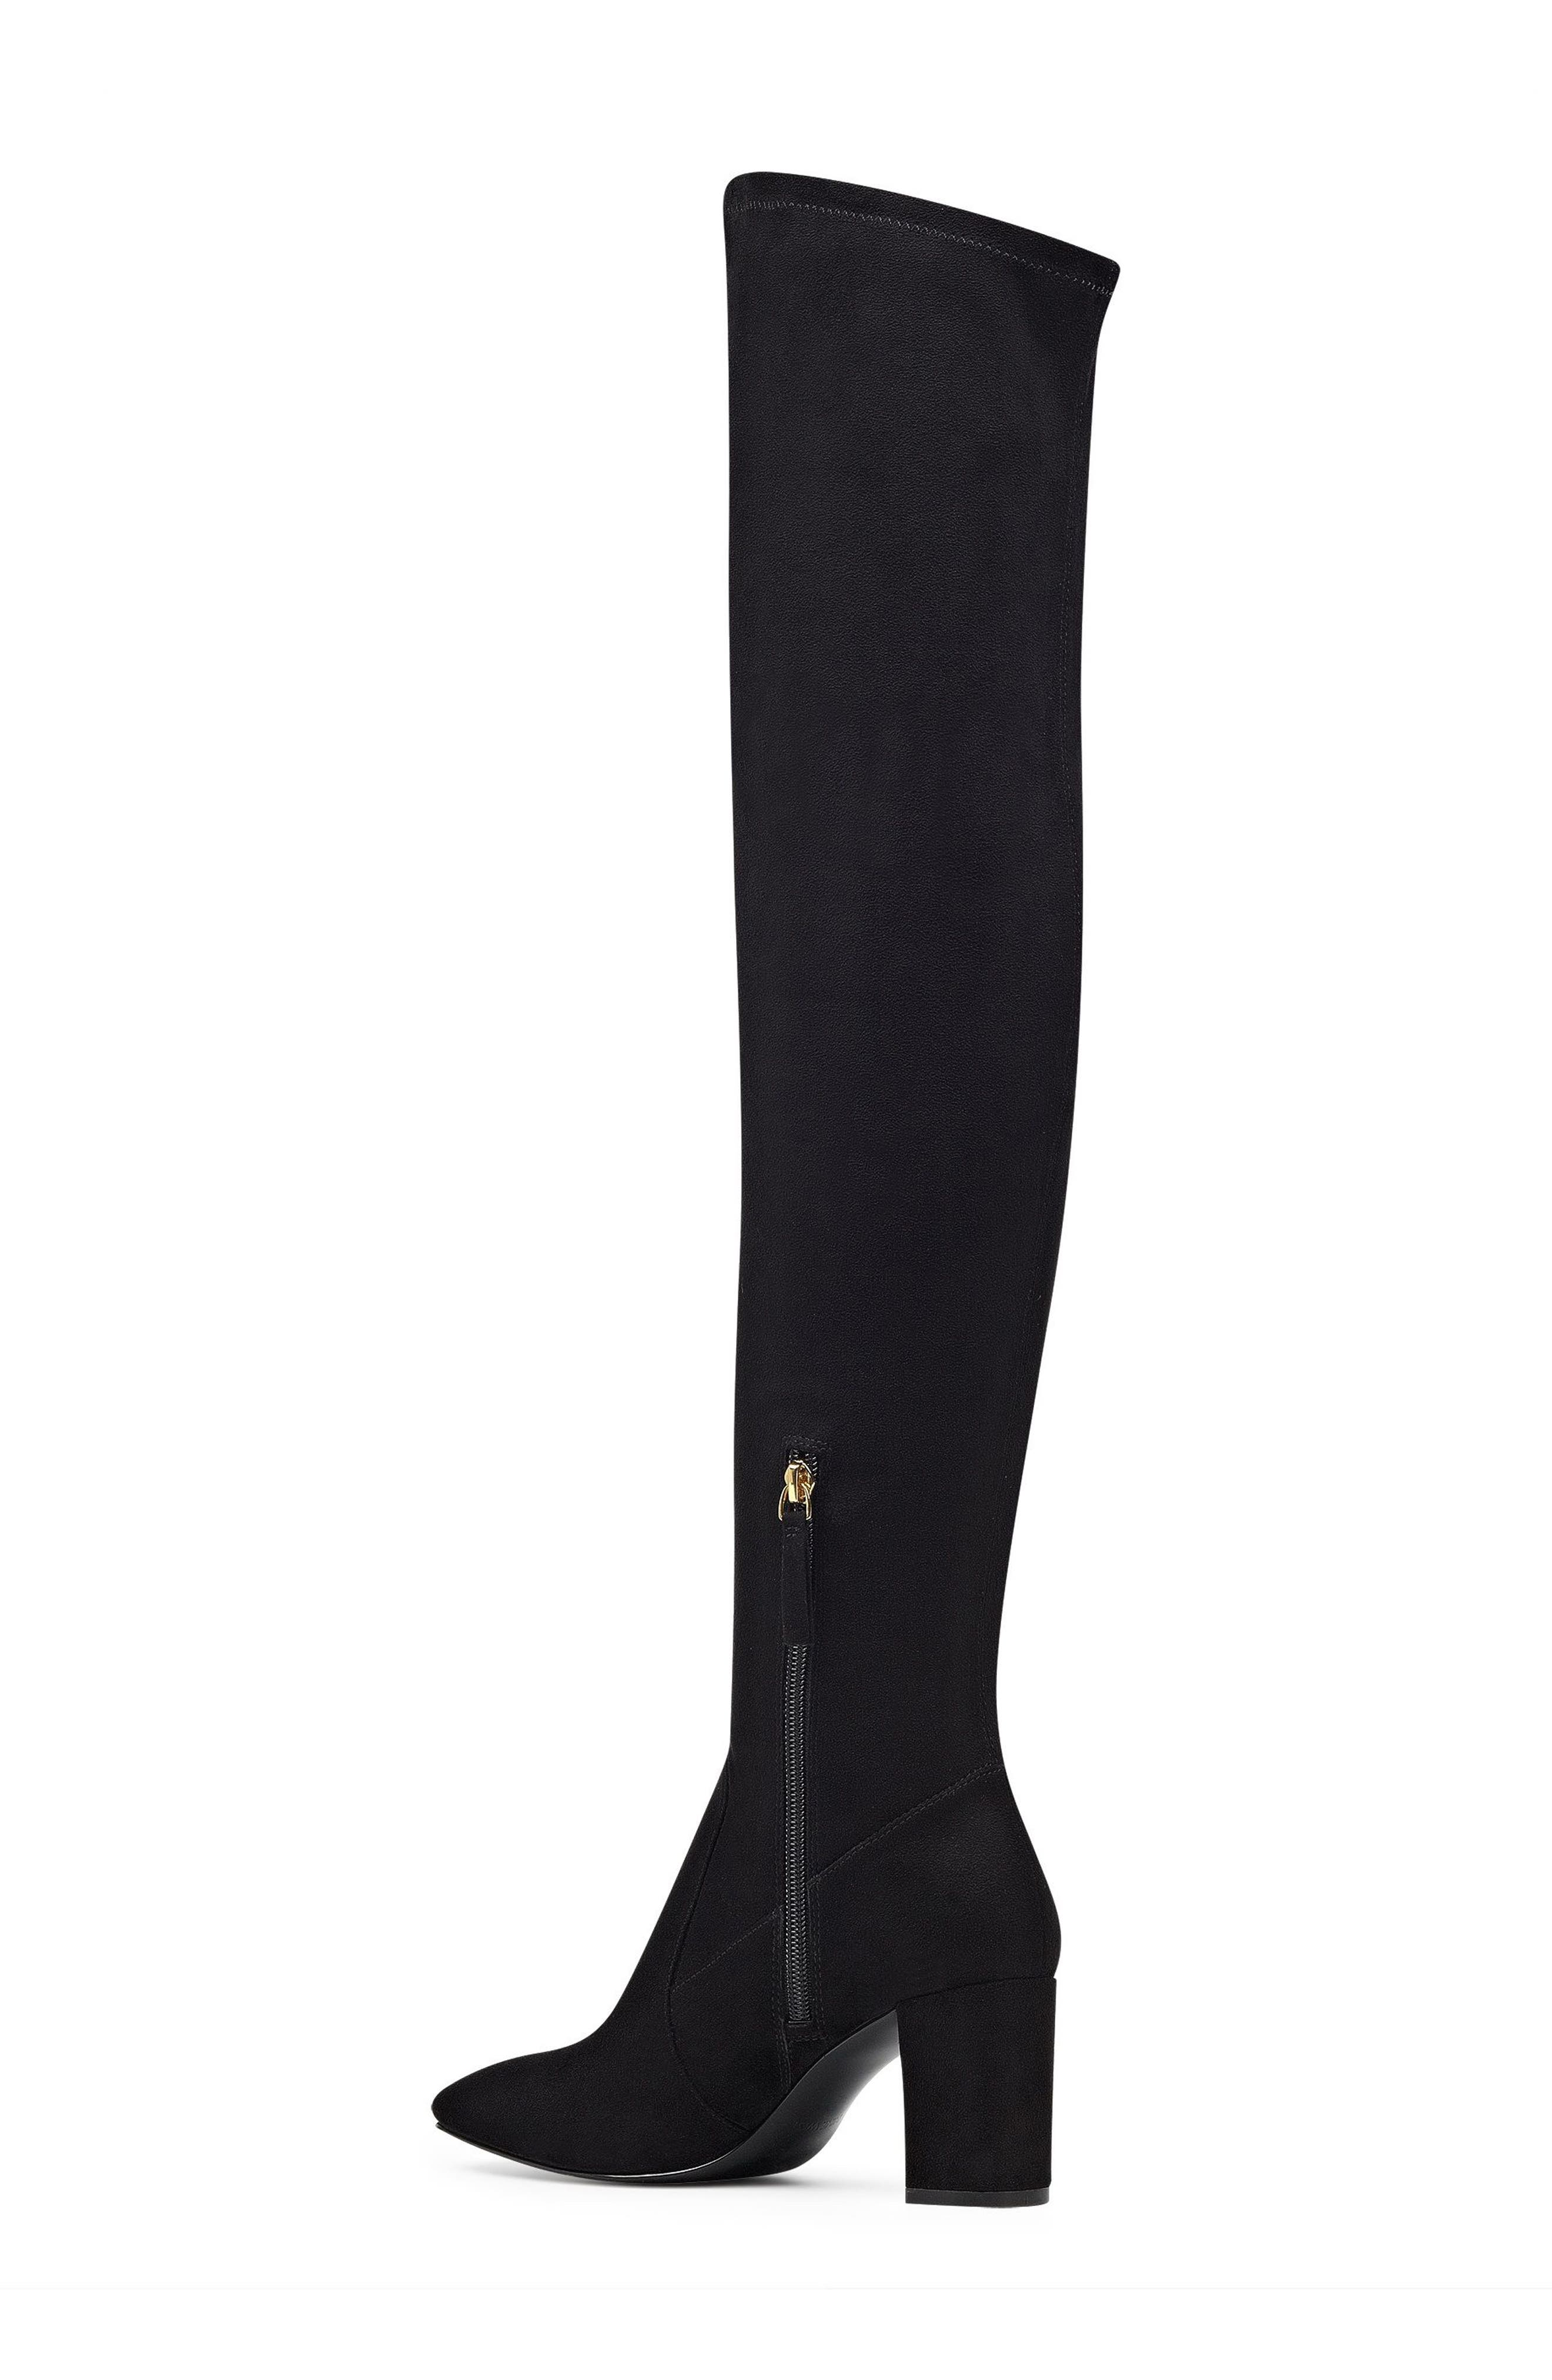 Xperian Over the Knee Boot,                             Alternate thumbnail 3, color,                             001